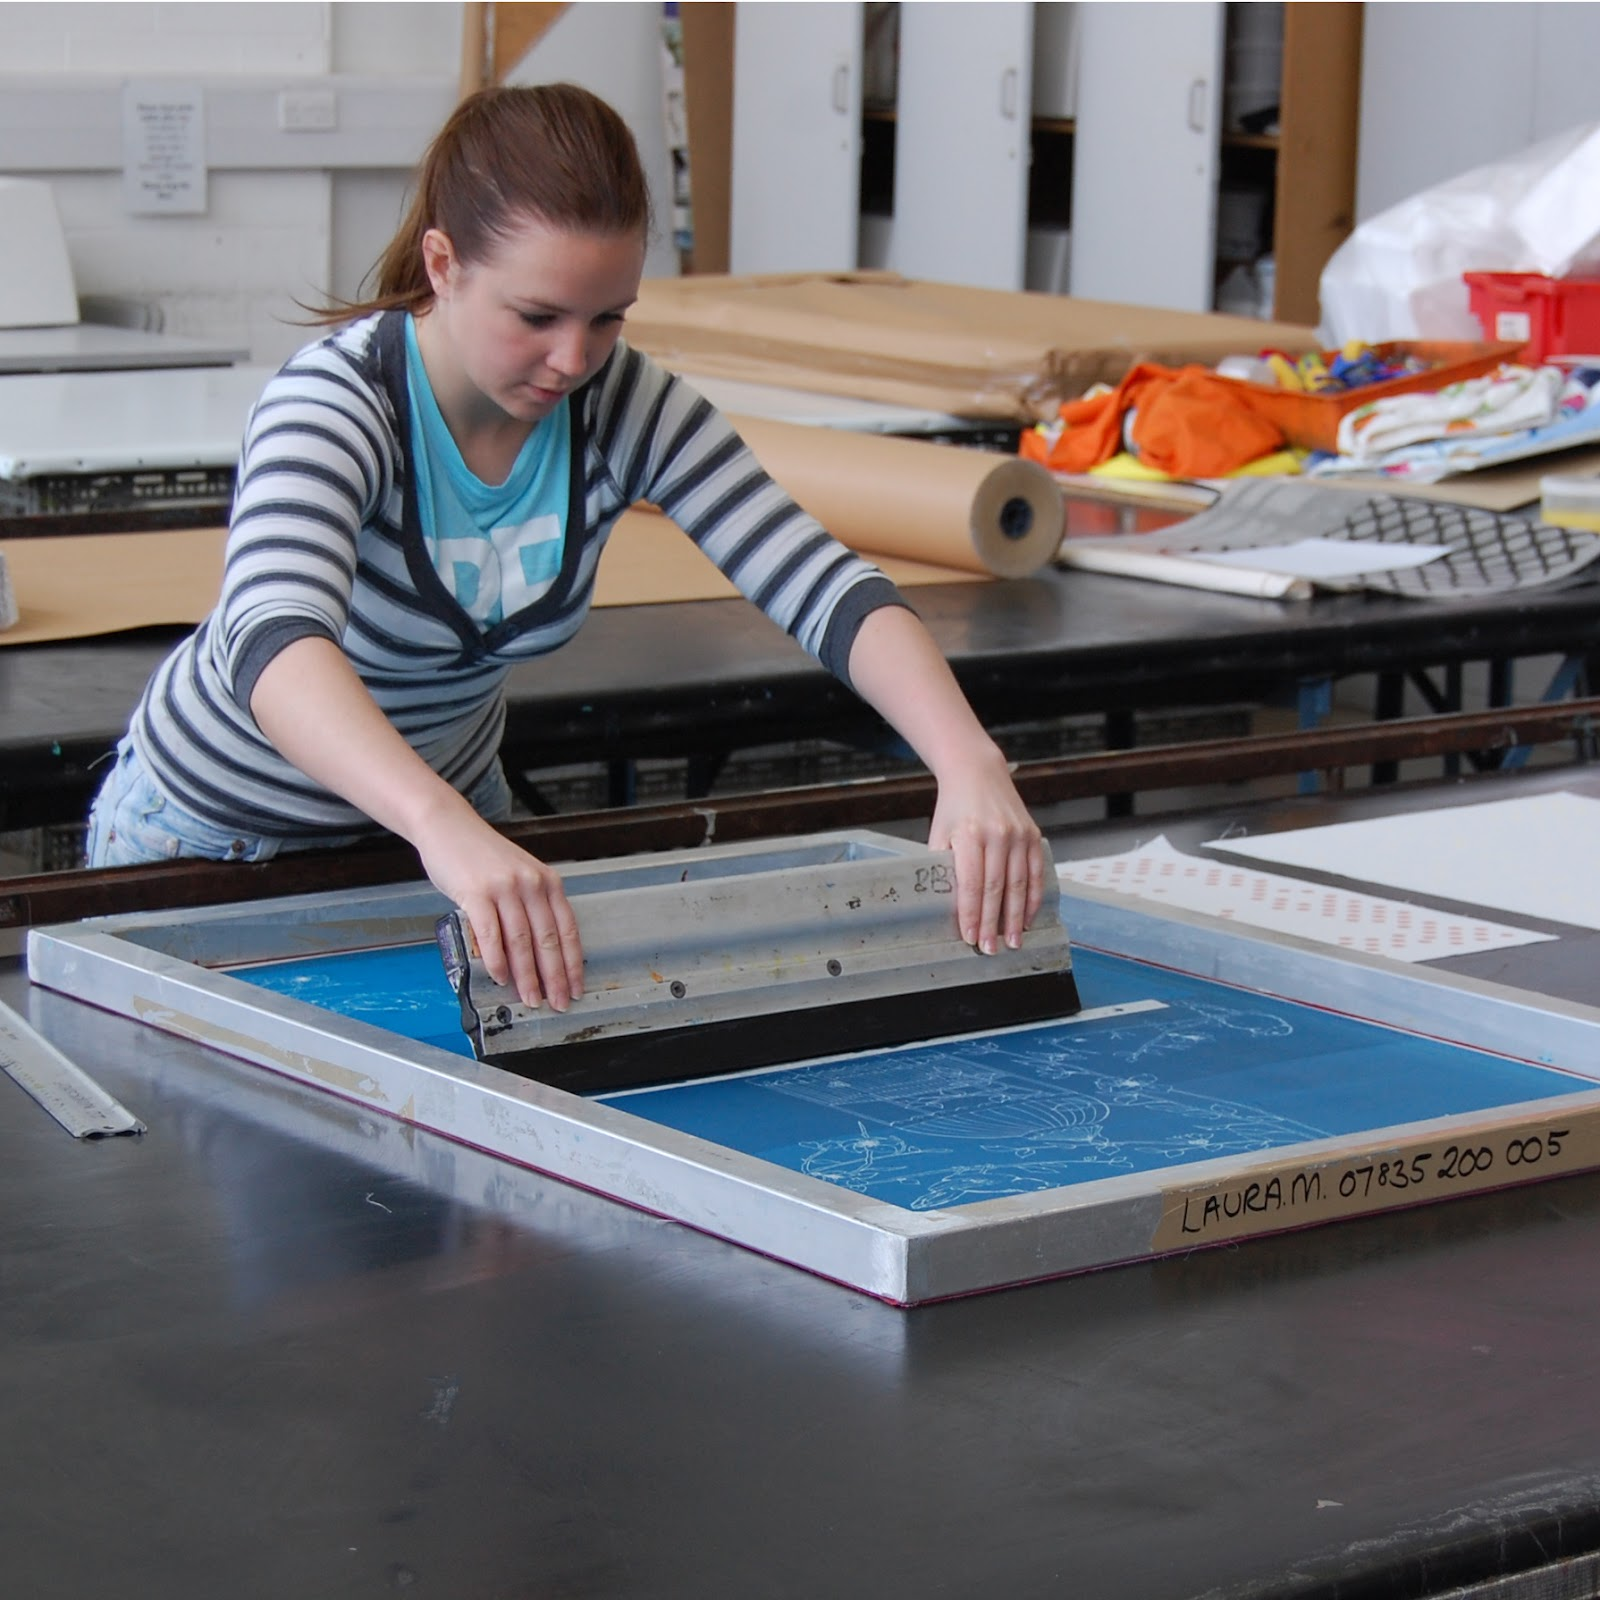 Laura felicity design my drop in screen printing workshop for Where can i get a shirt screen printed